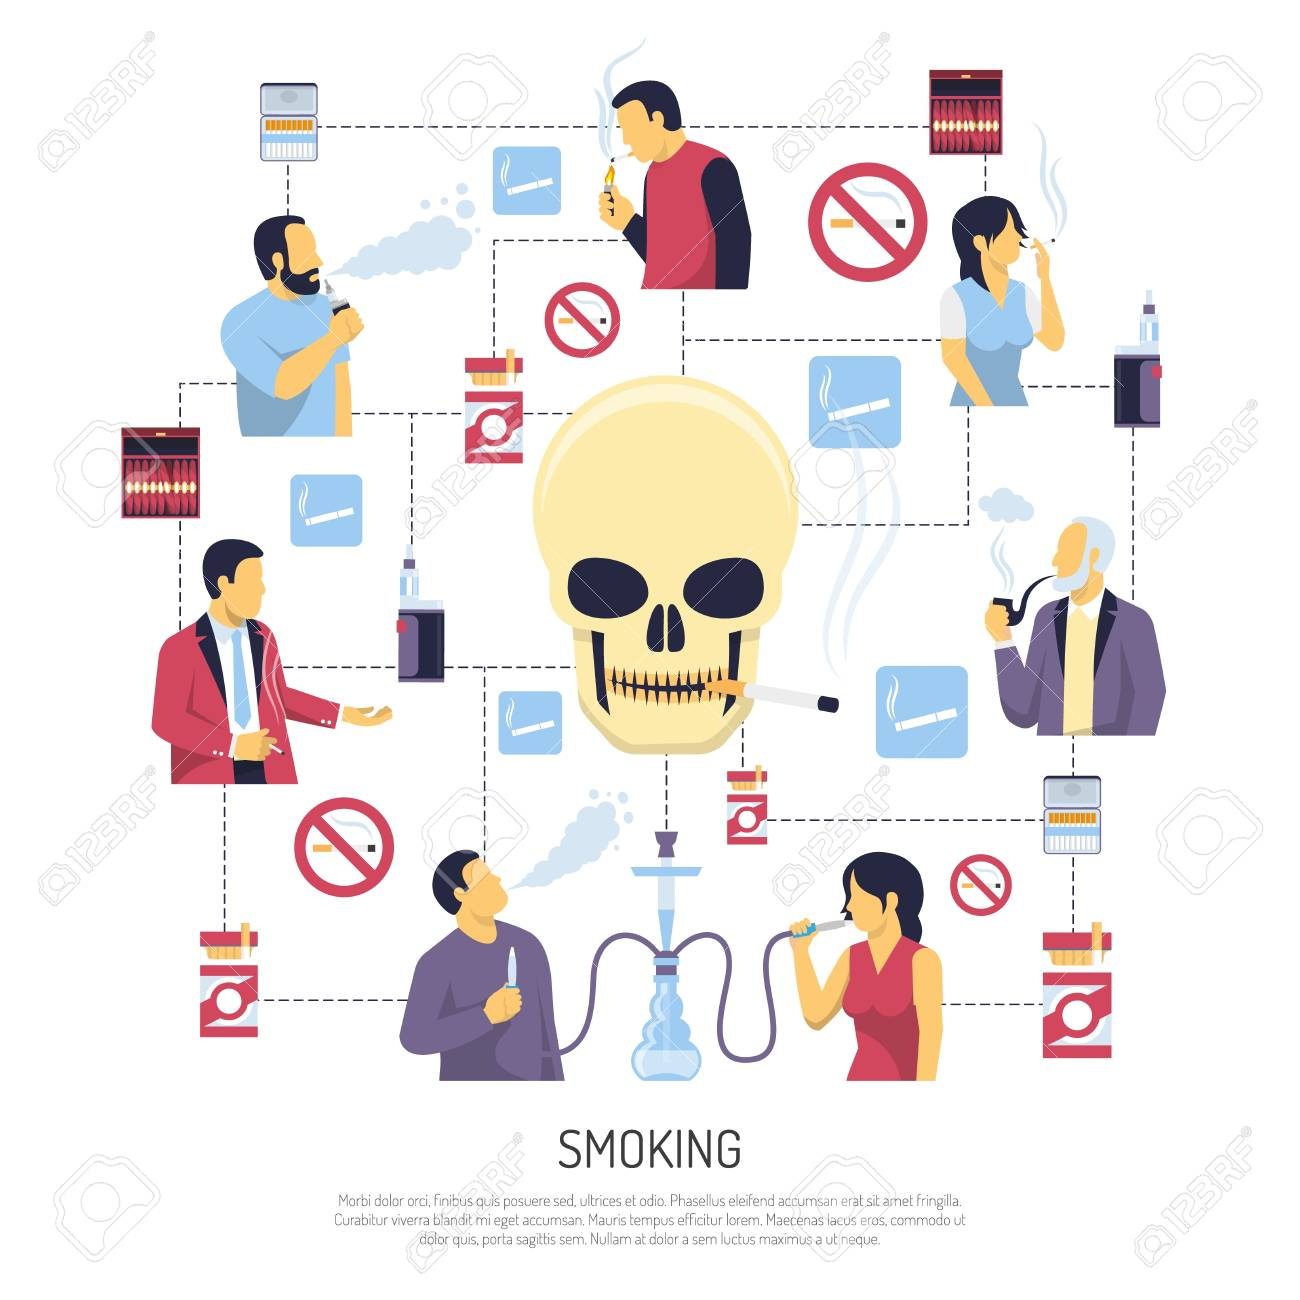 smoking negative health effects warning flowchart style poster